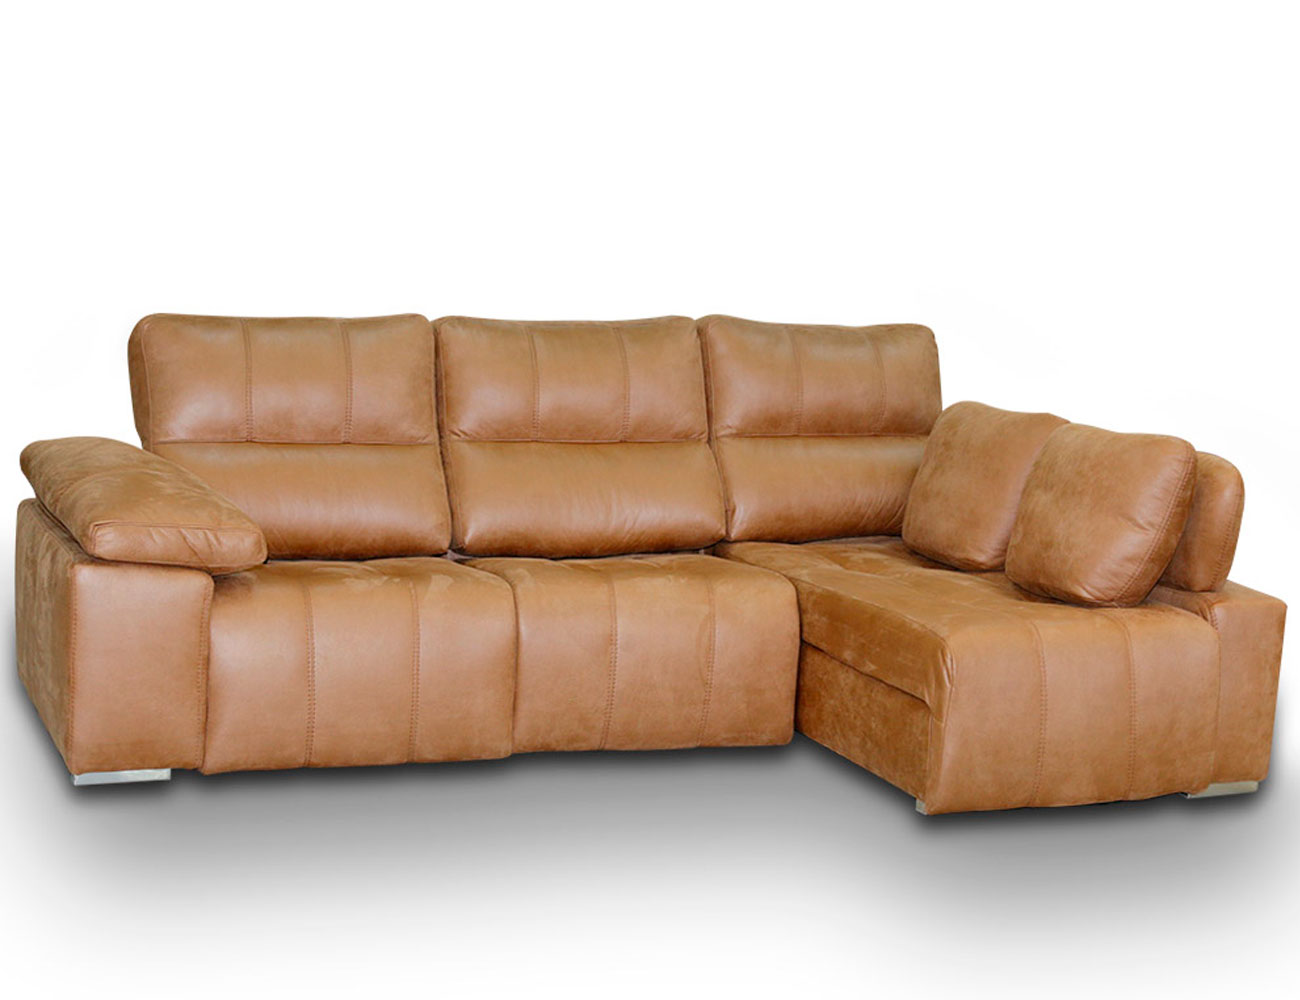 Sofa chaiselongue relax 2 motores anti manchas52